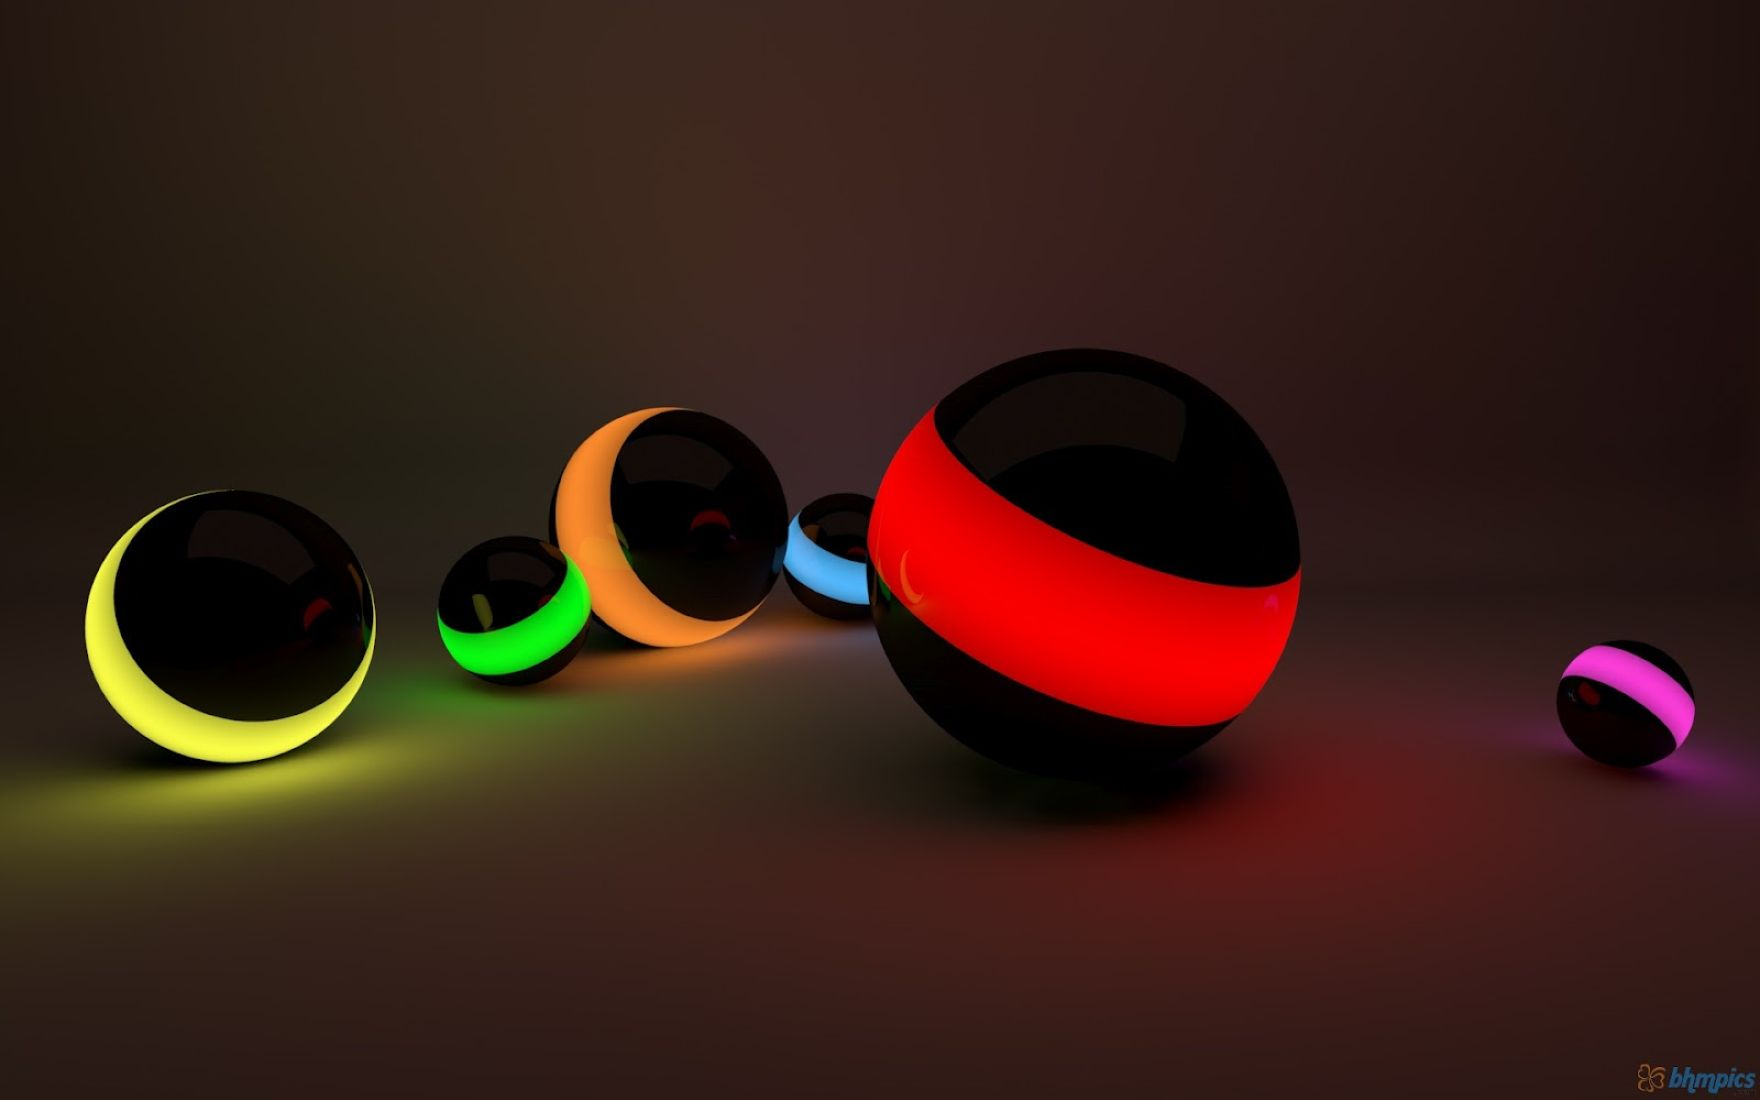 3d Hd Wallpapers For Laptop Download